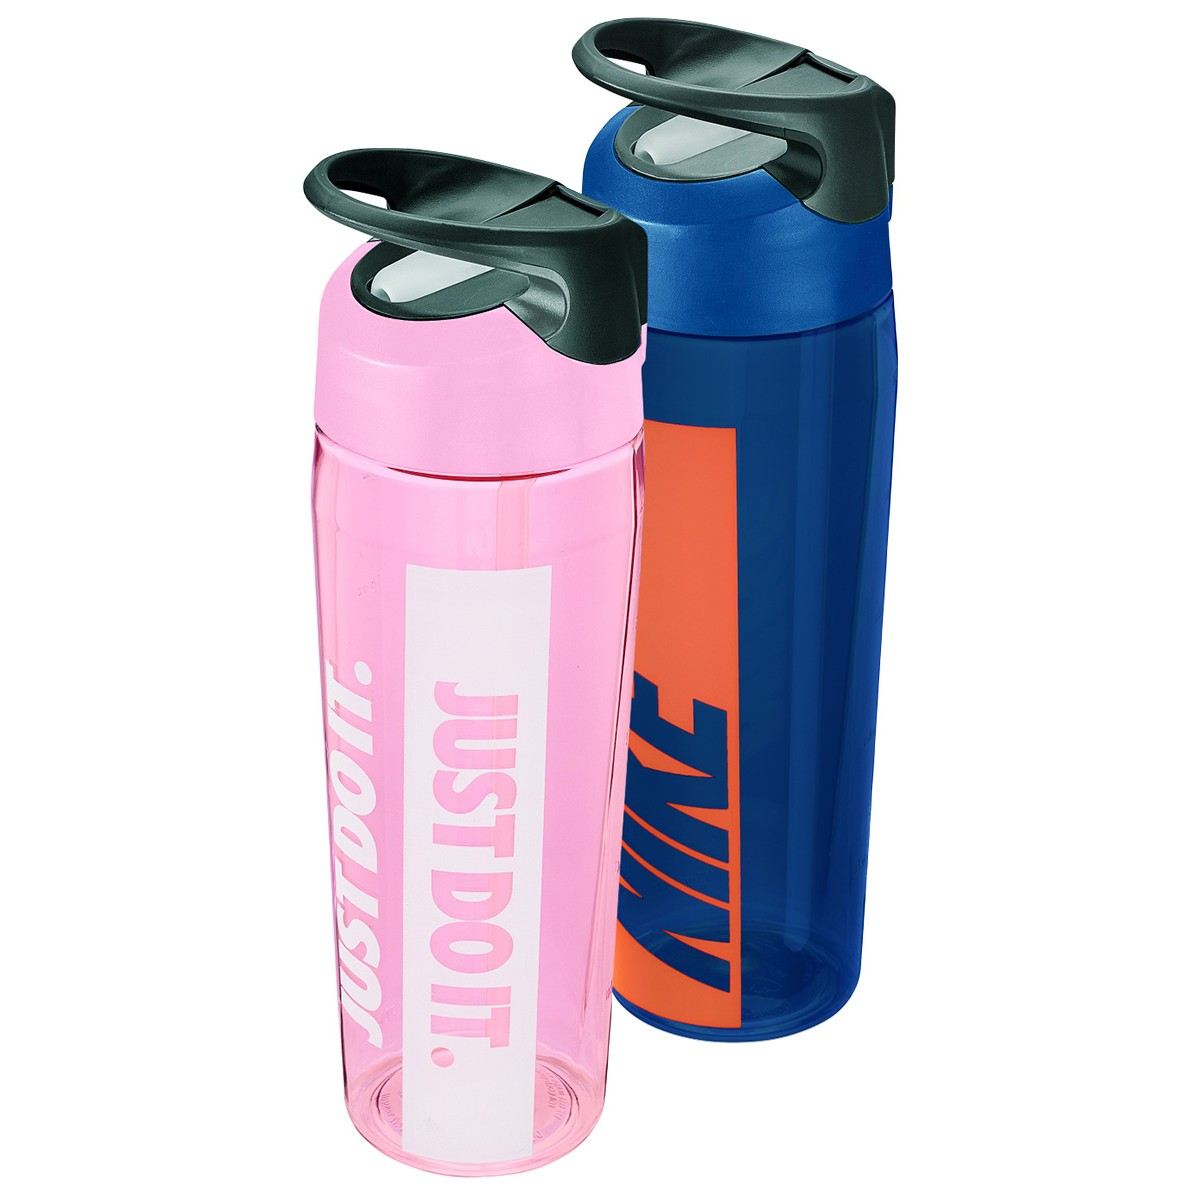 GOURDE NIKE HYPERCHARGE GRAPHIC 24 OZ (709ML)